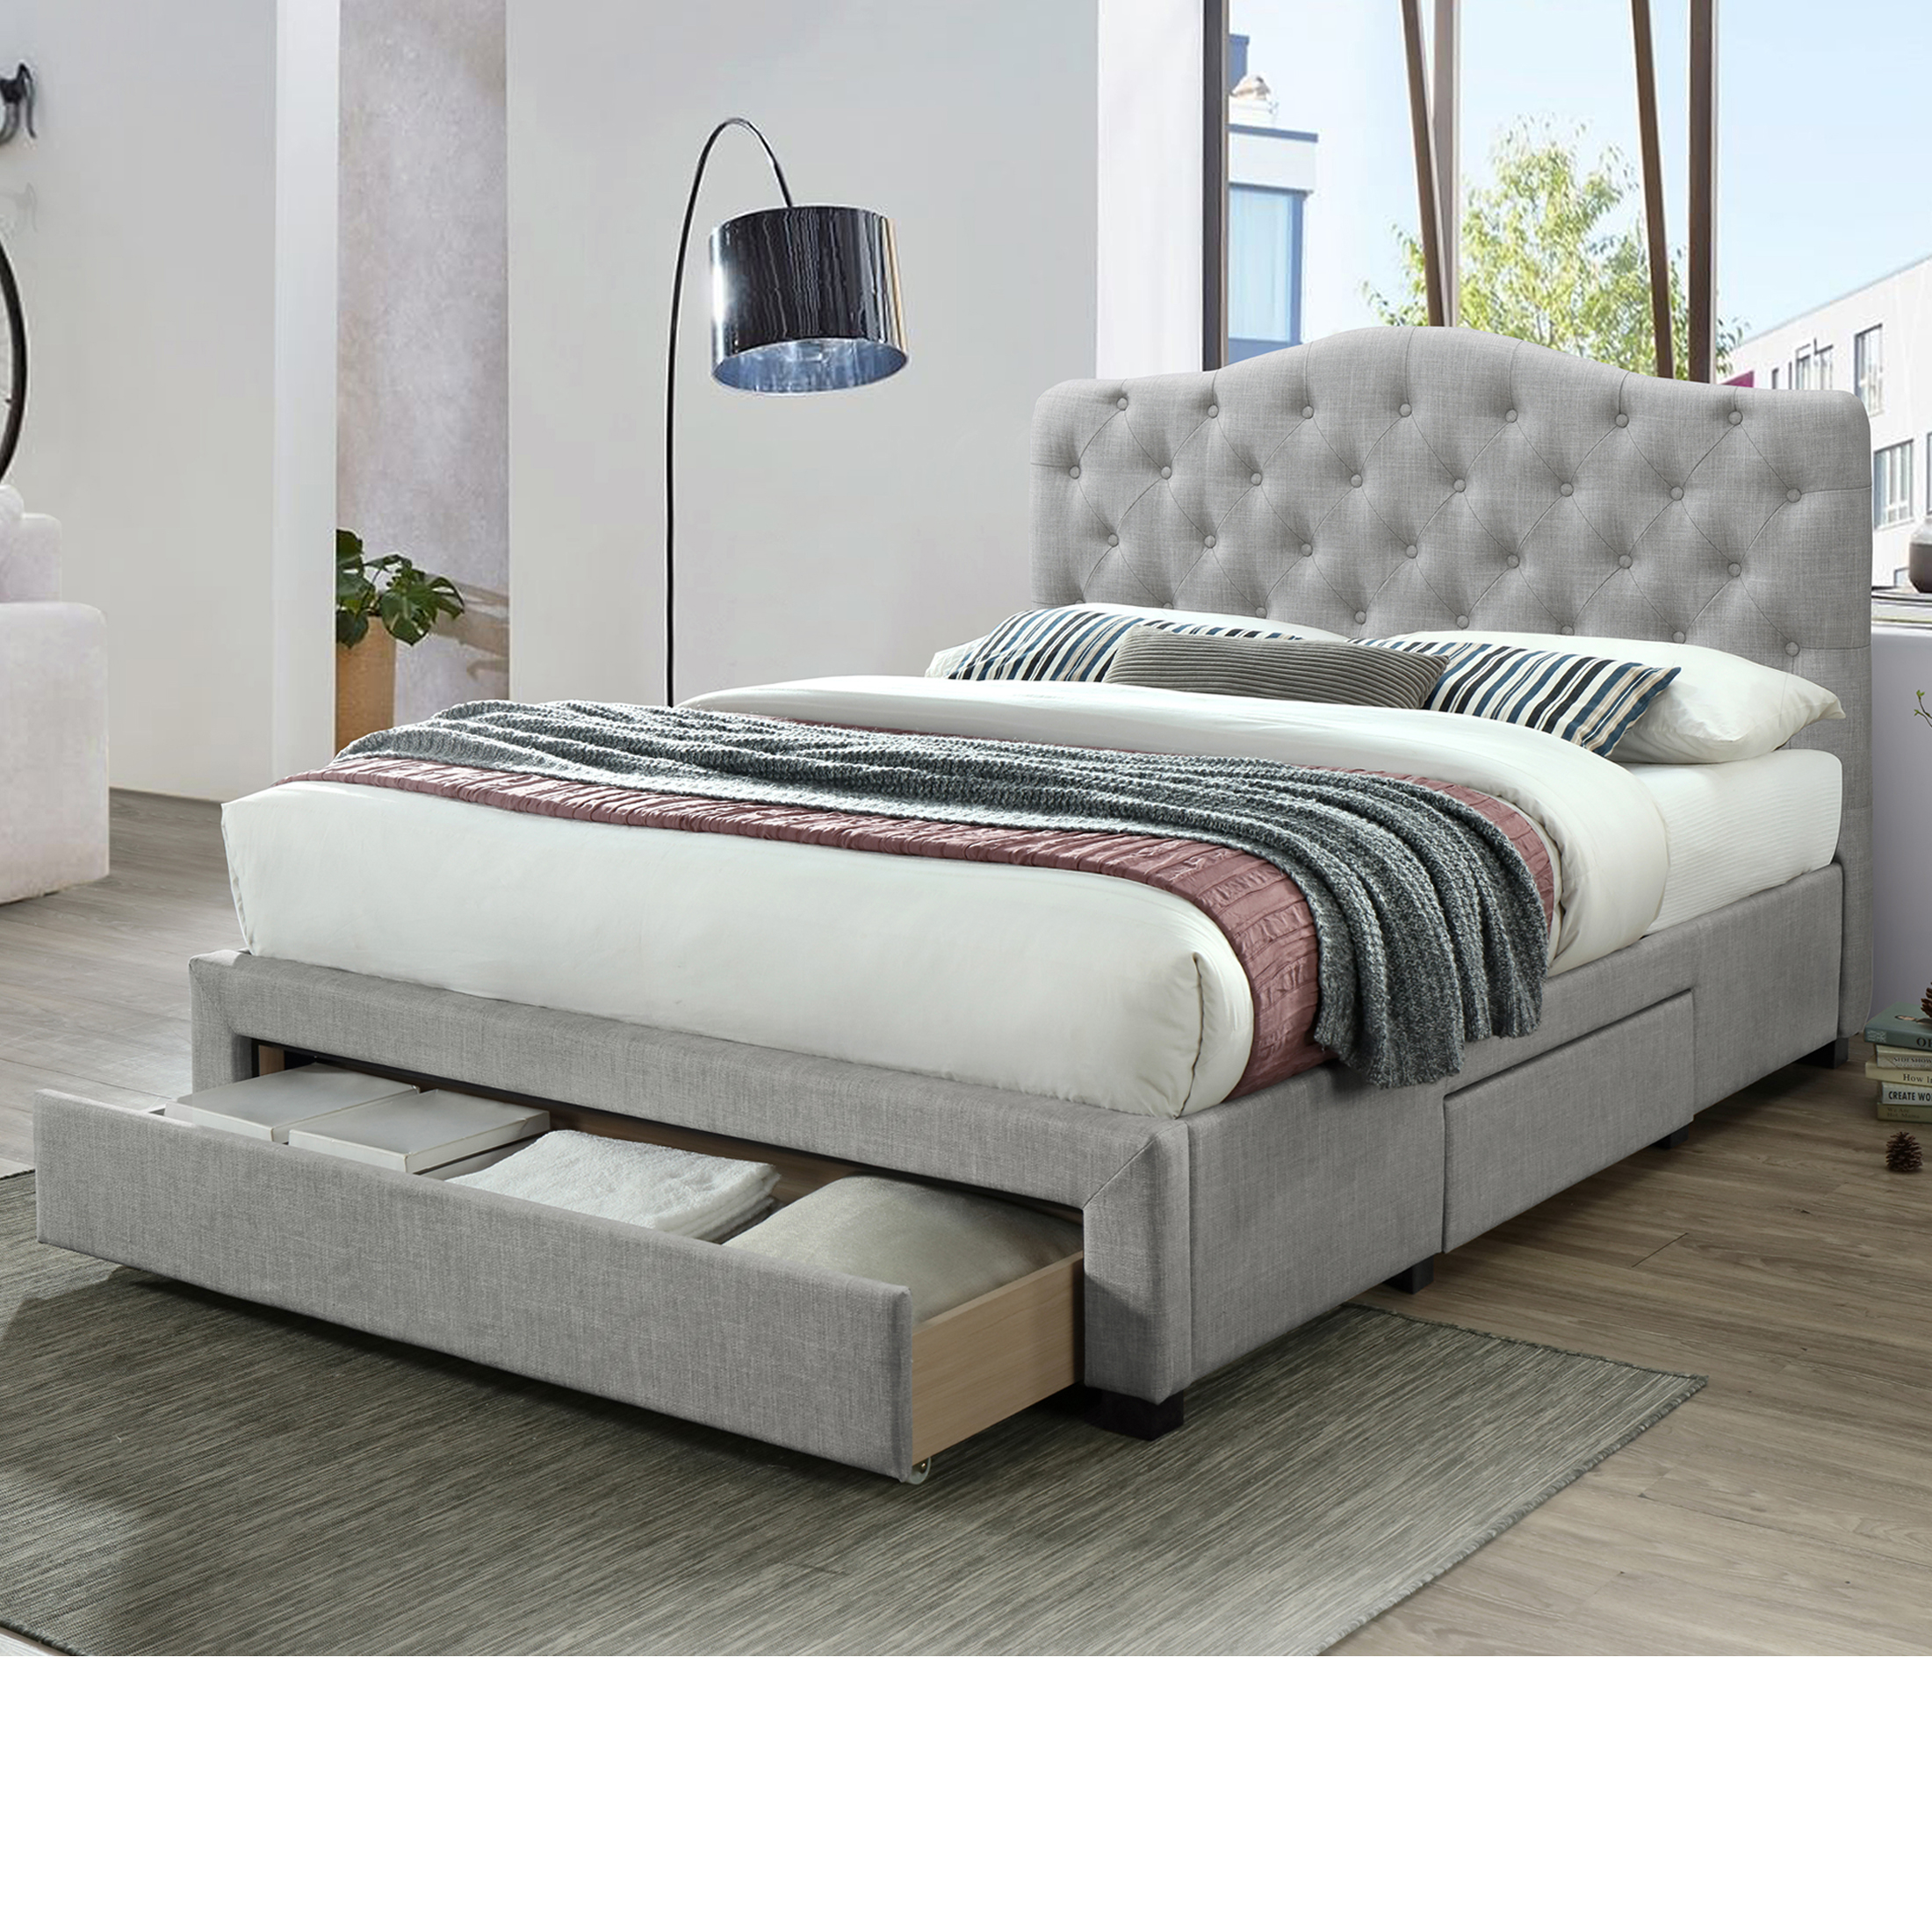 Modern Stylish Queen Size Fabric Bed Frame With 3 Drawers Silver Yes Furniture Online